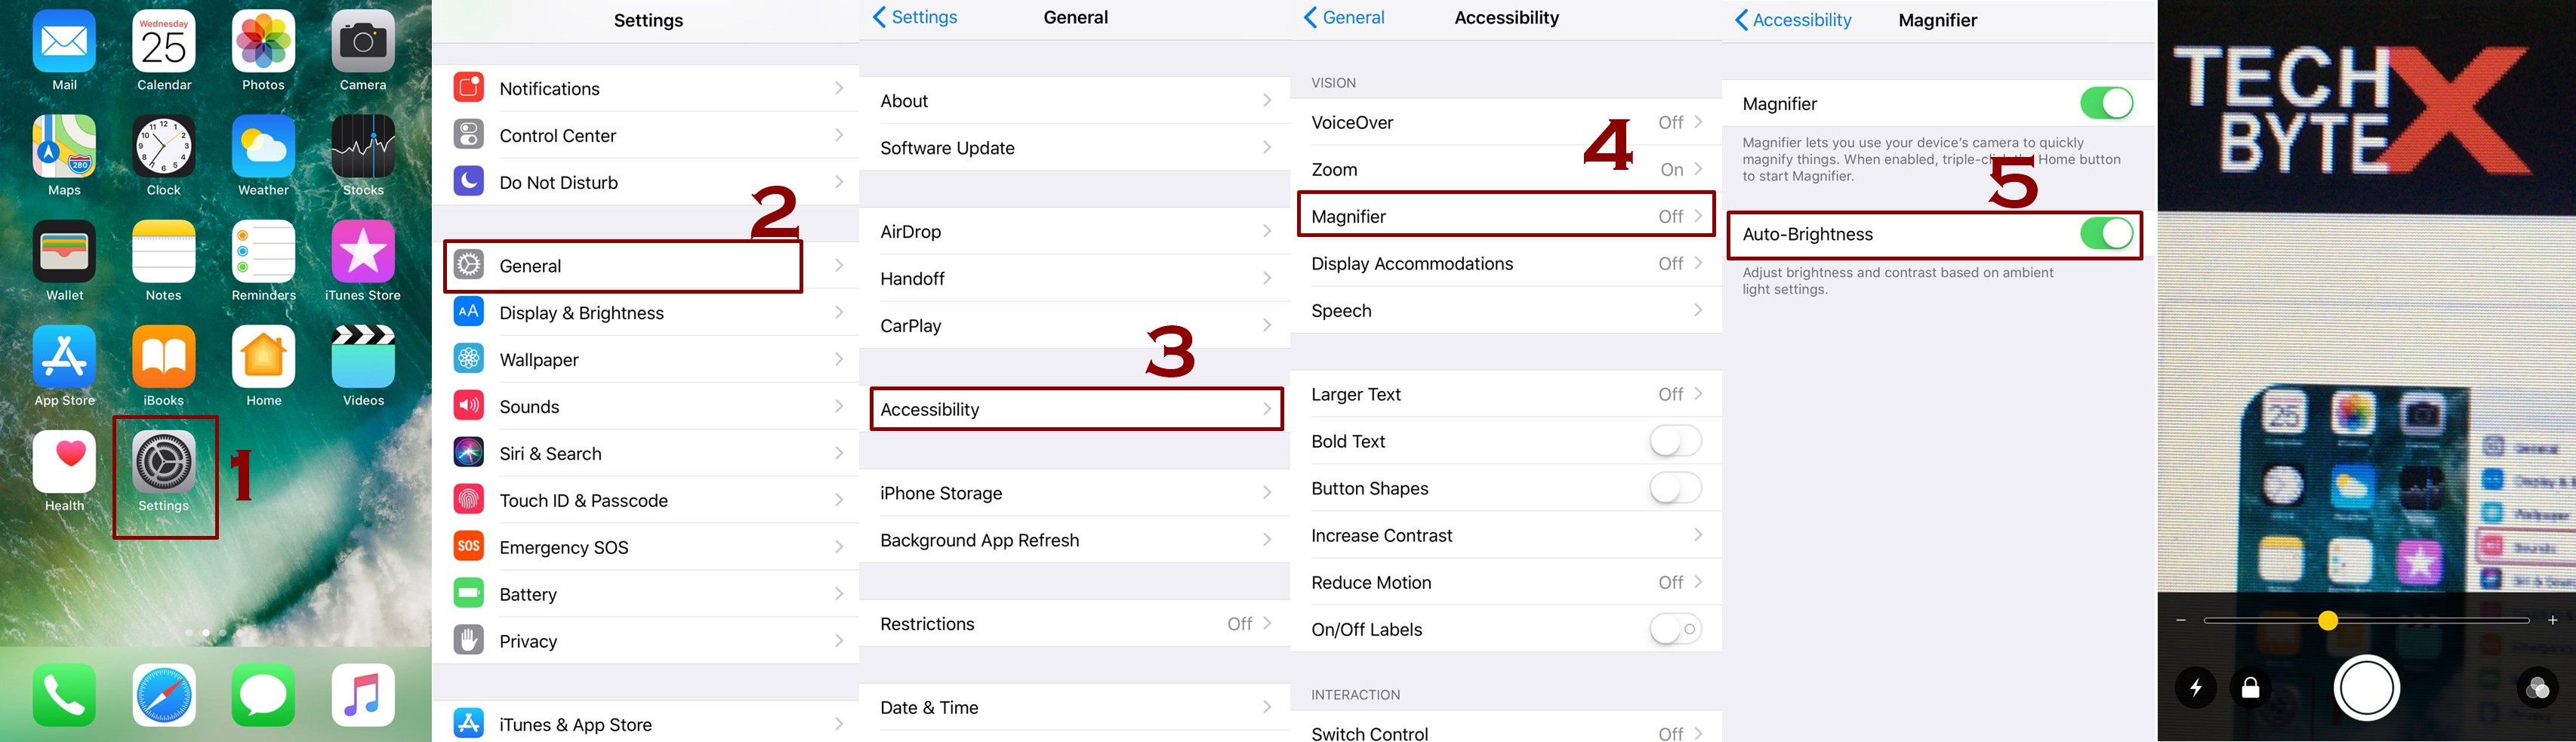 how to enable auto brightness in magnifier on iphone - Everything about Magnifier on iPhone